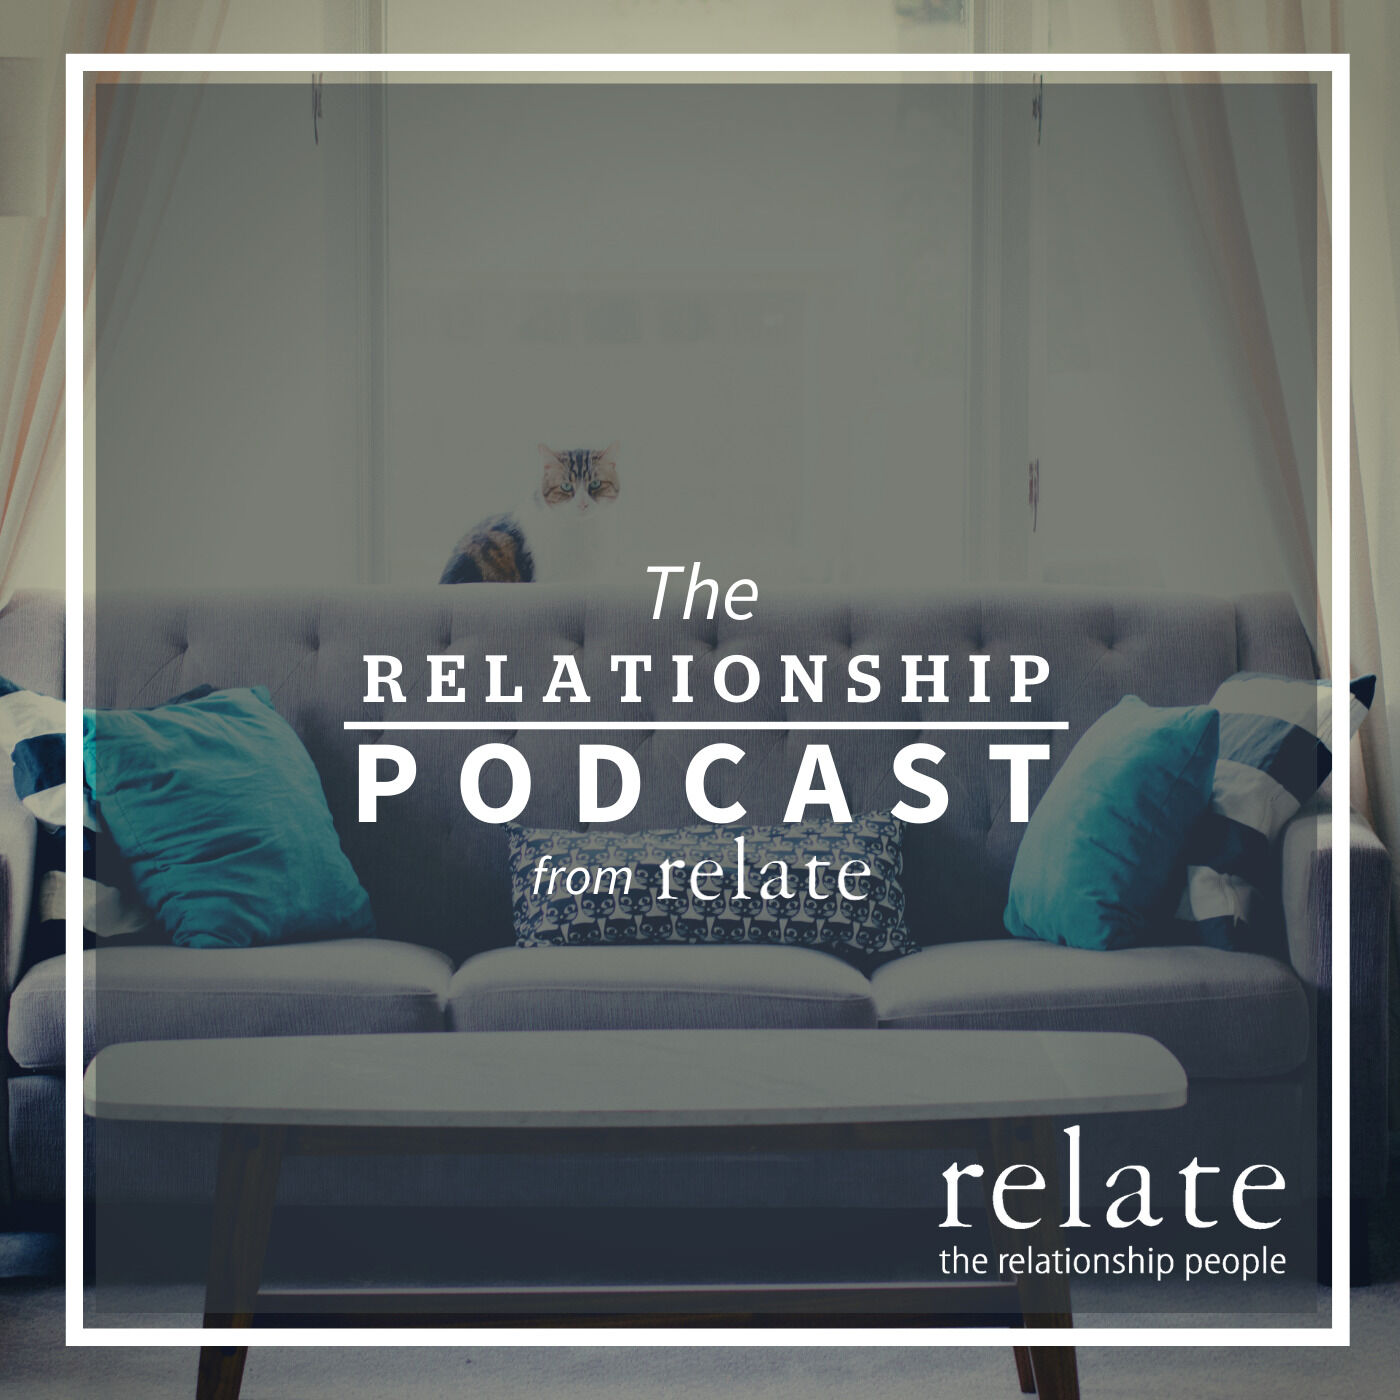 The Relationship Podcast from Relate